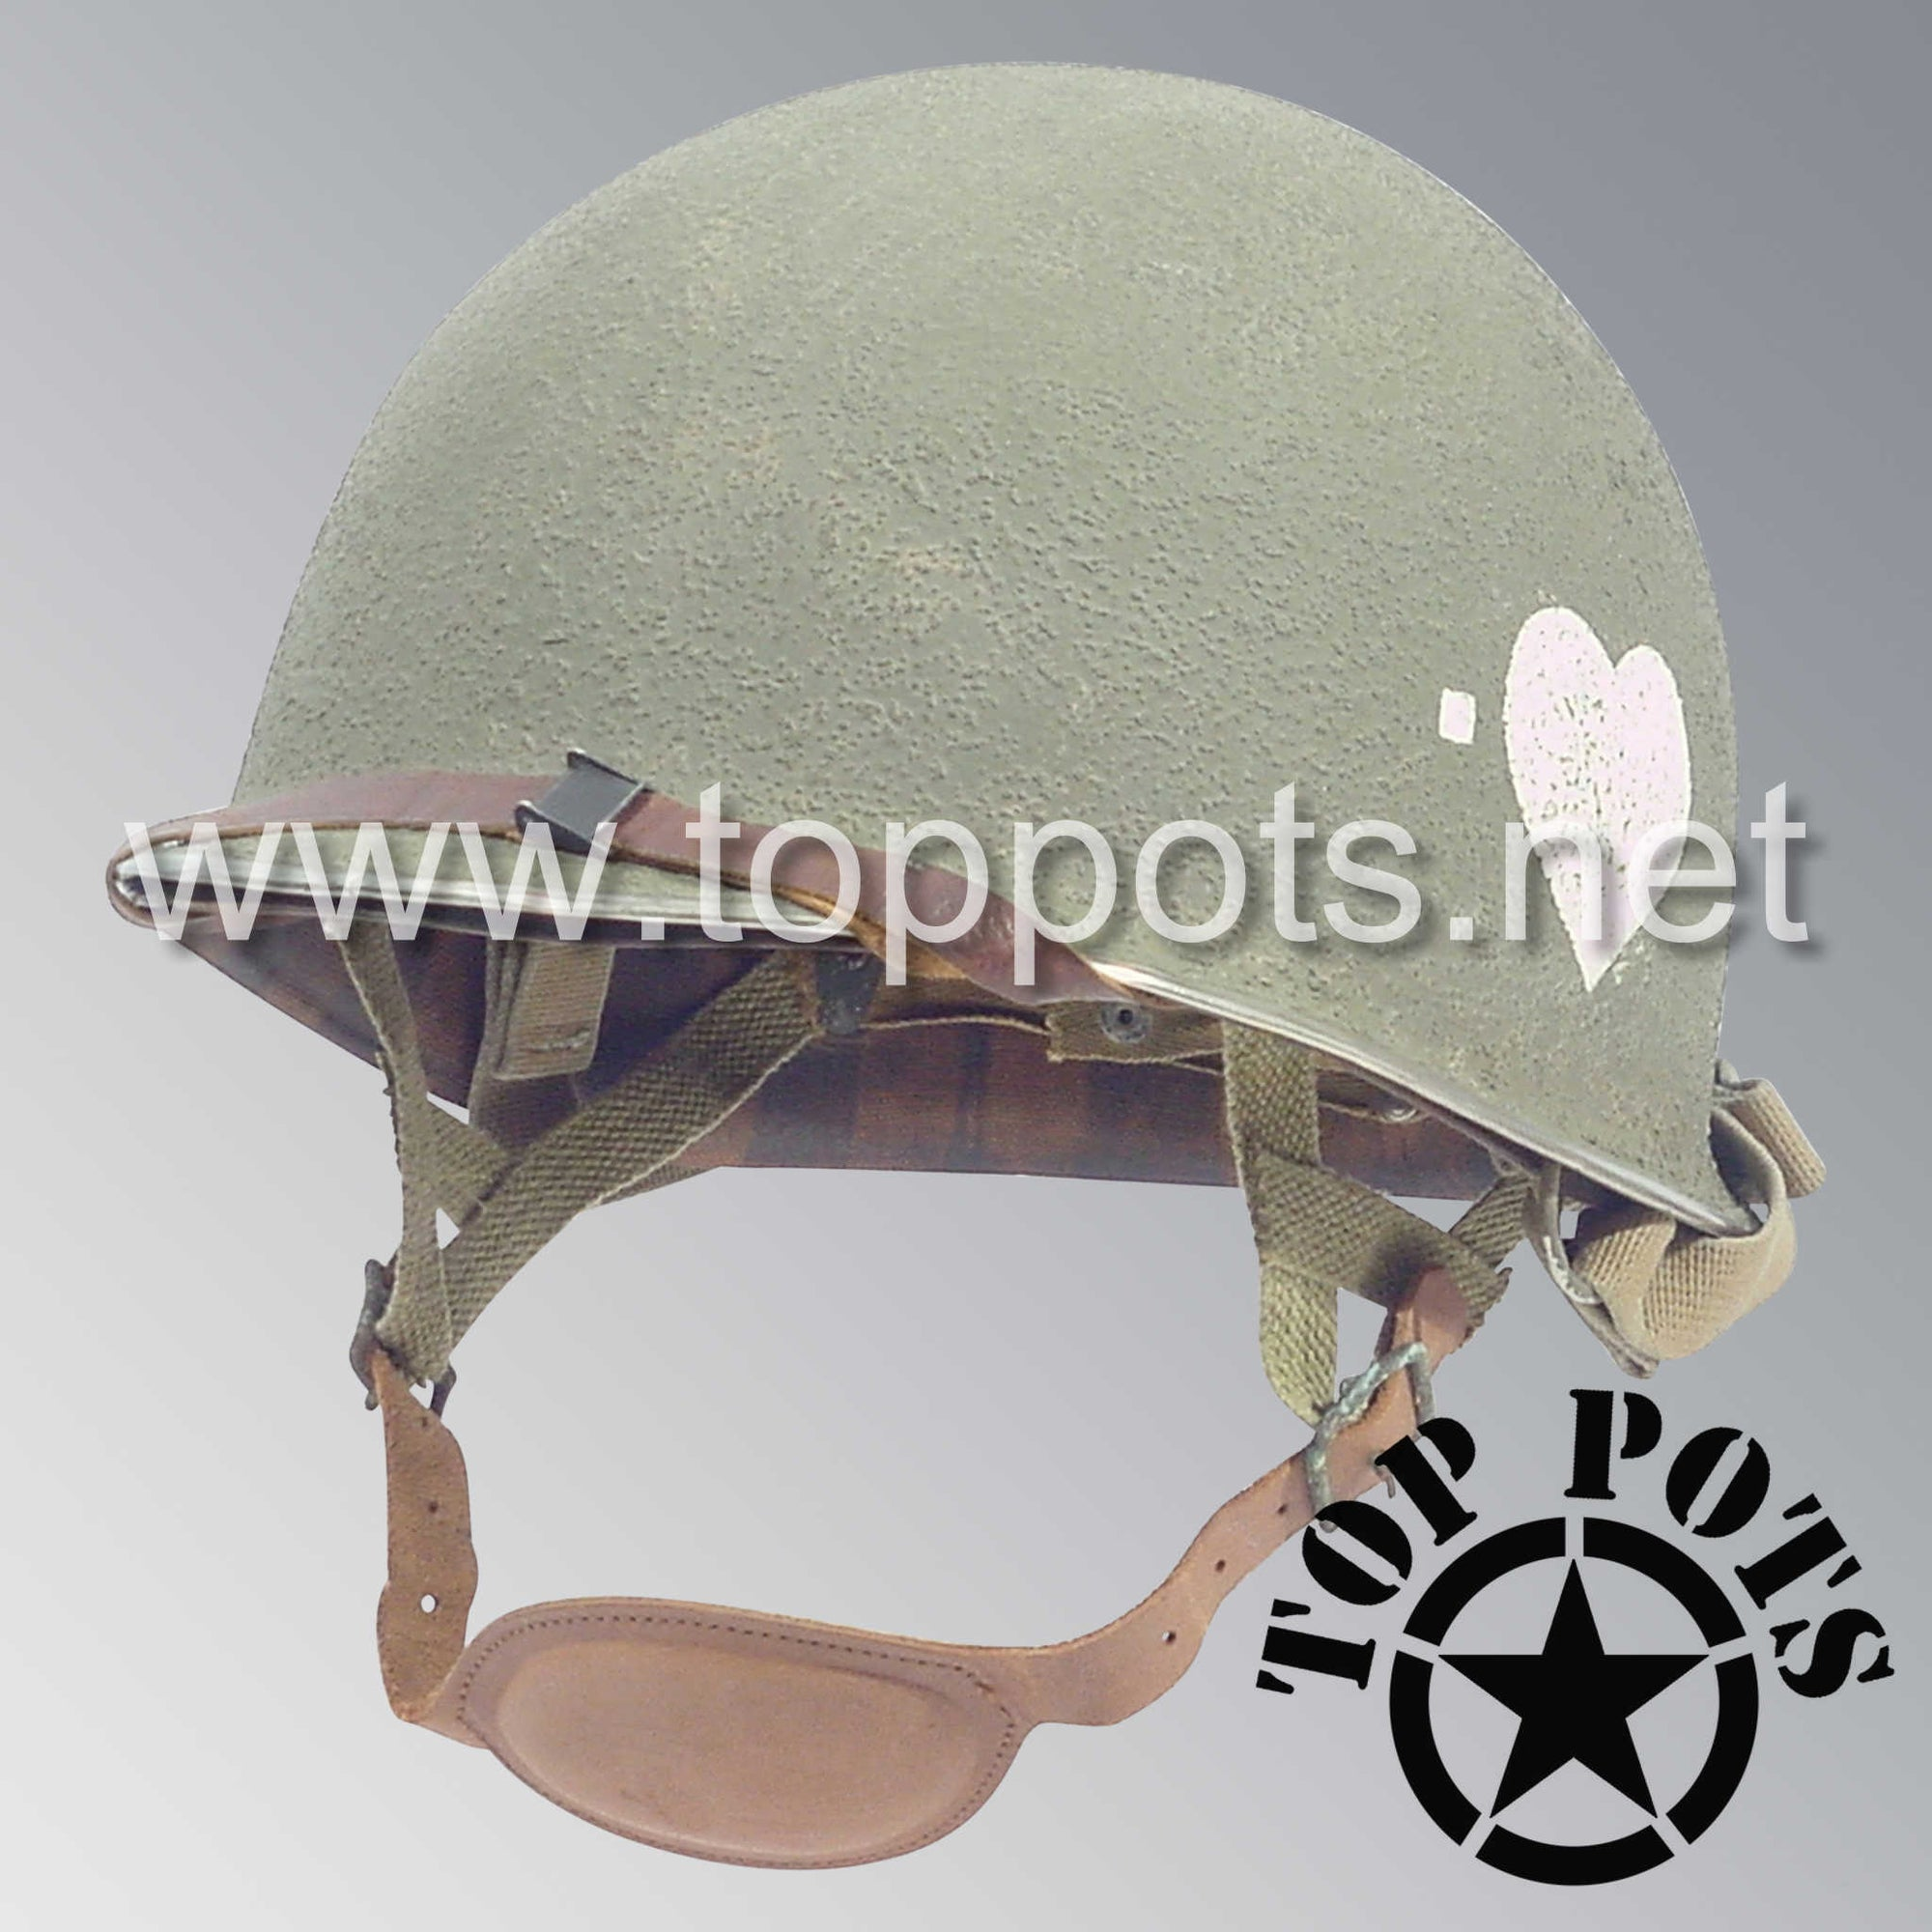 Image 1 of WWII US Army Aged Original M2 Paratrooper Airborne Helmet D Bale Shell and Liner with 502nd PIR 2rd Battalion Emblem